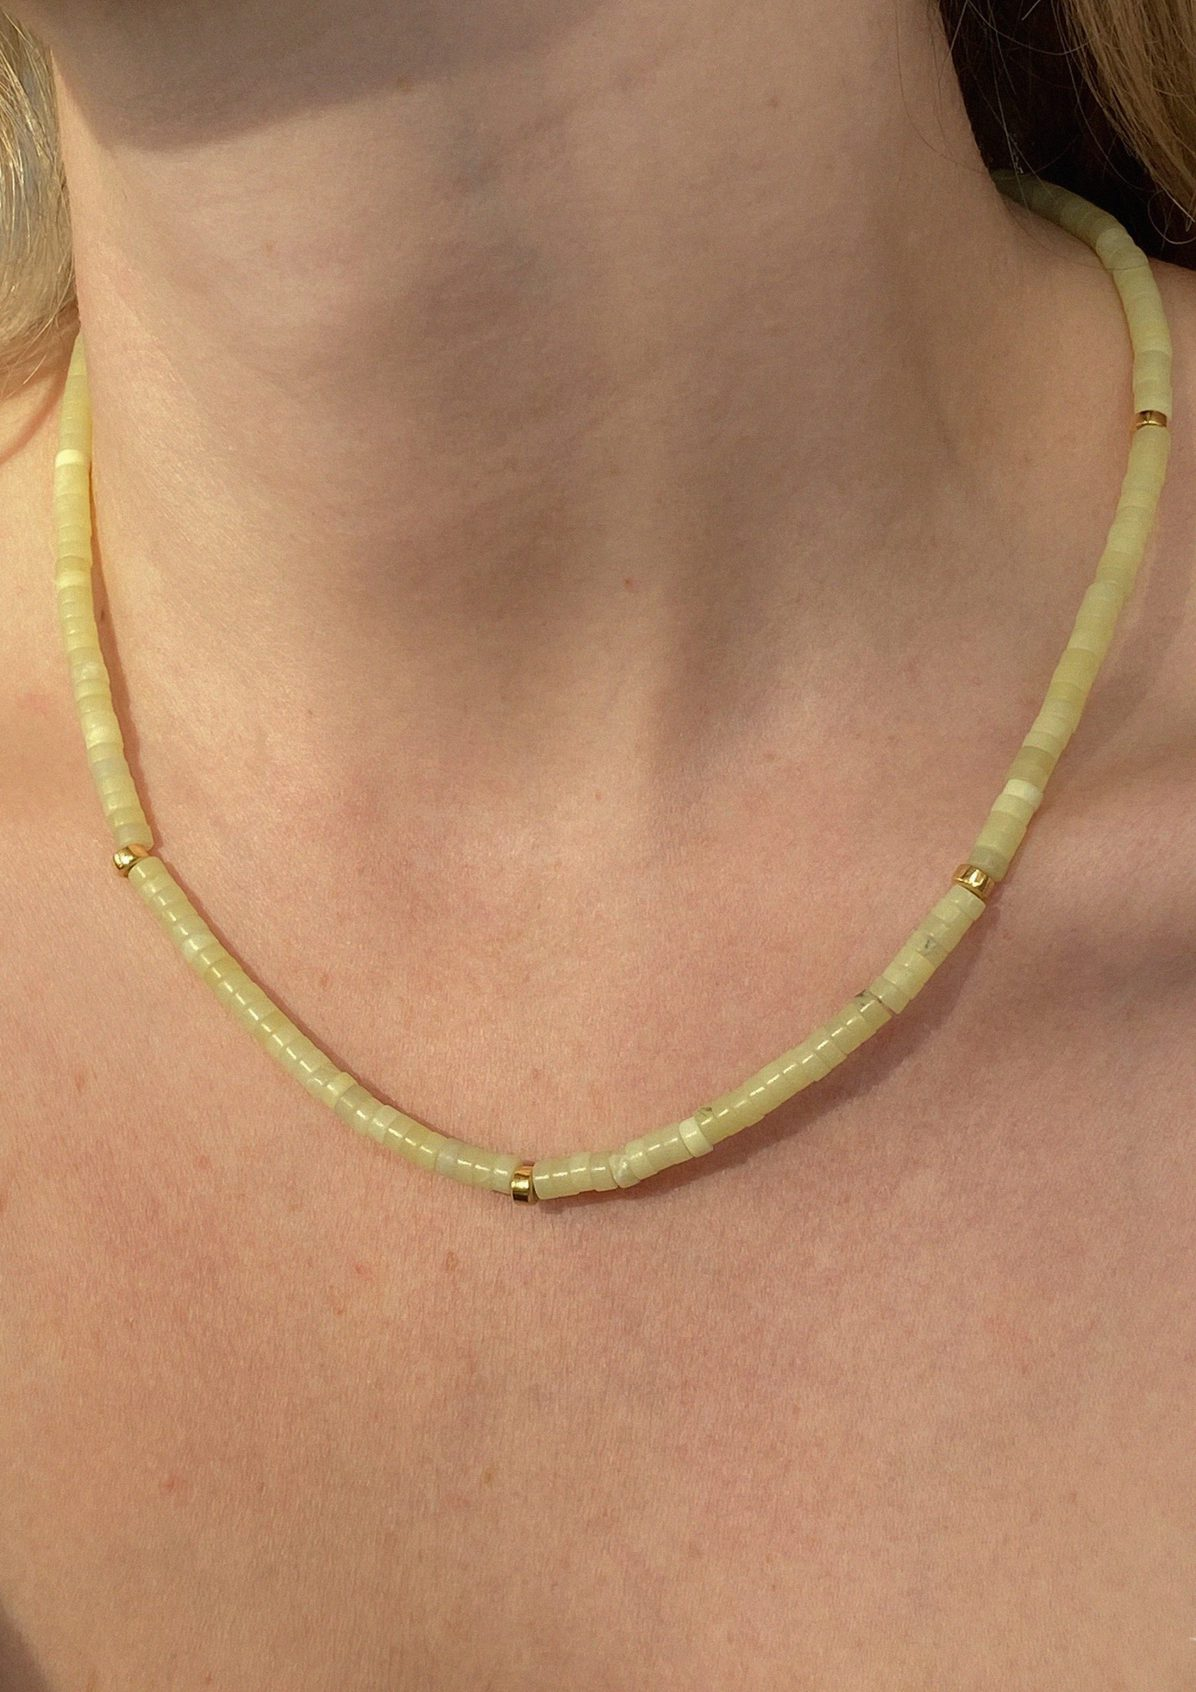 HOW TO LOSE A GUY NECKLACE - HERMINA ATHENS X STYLELOVE COLLECTION